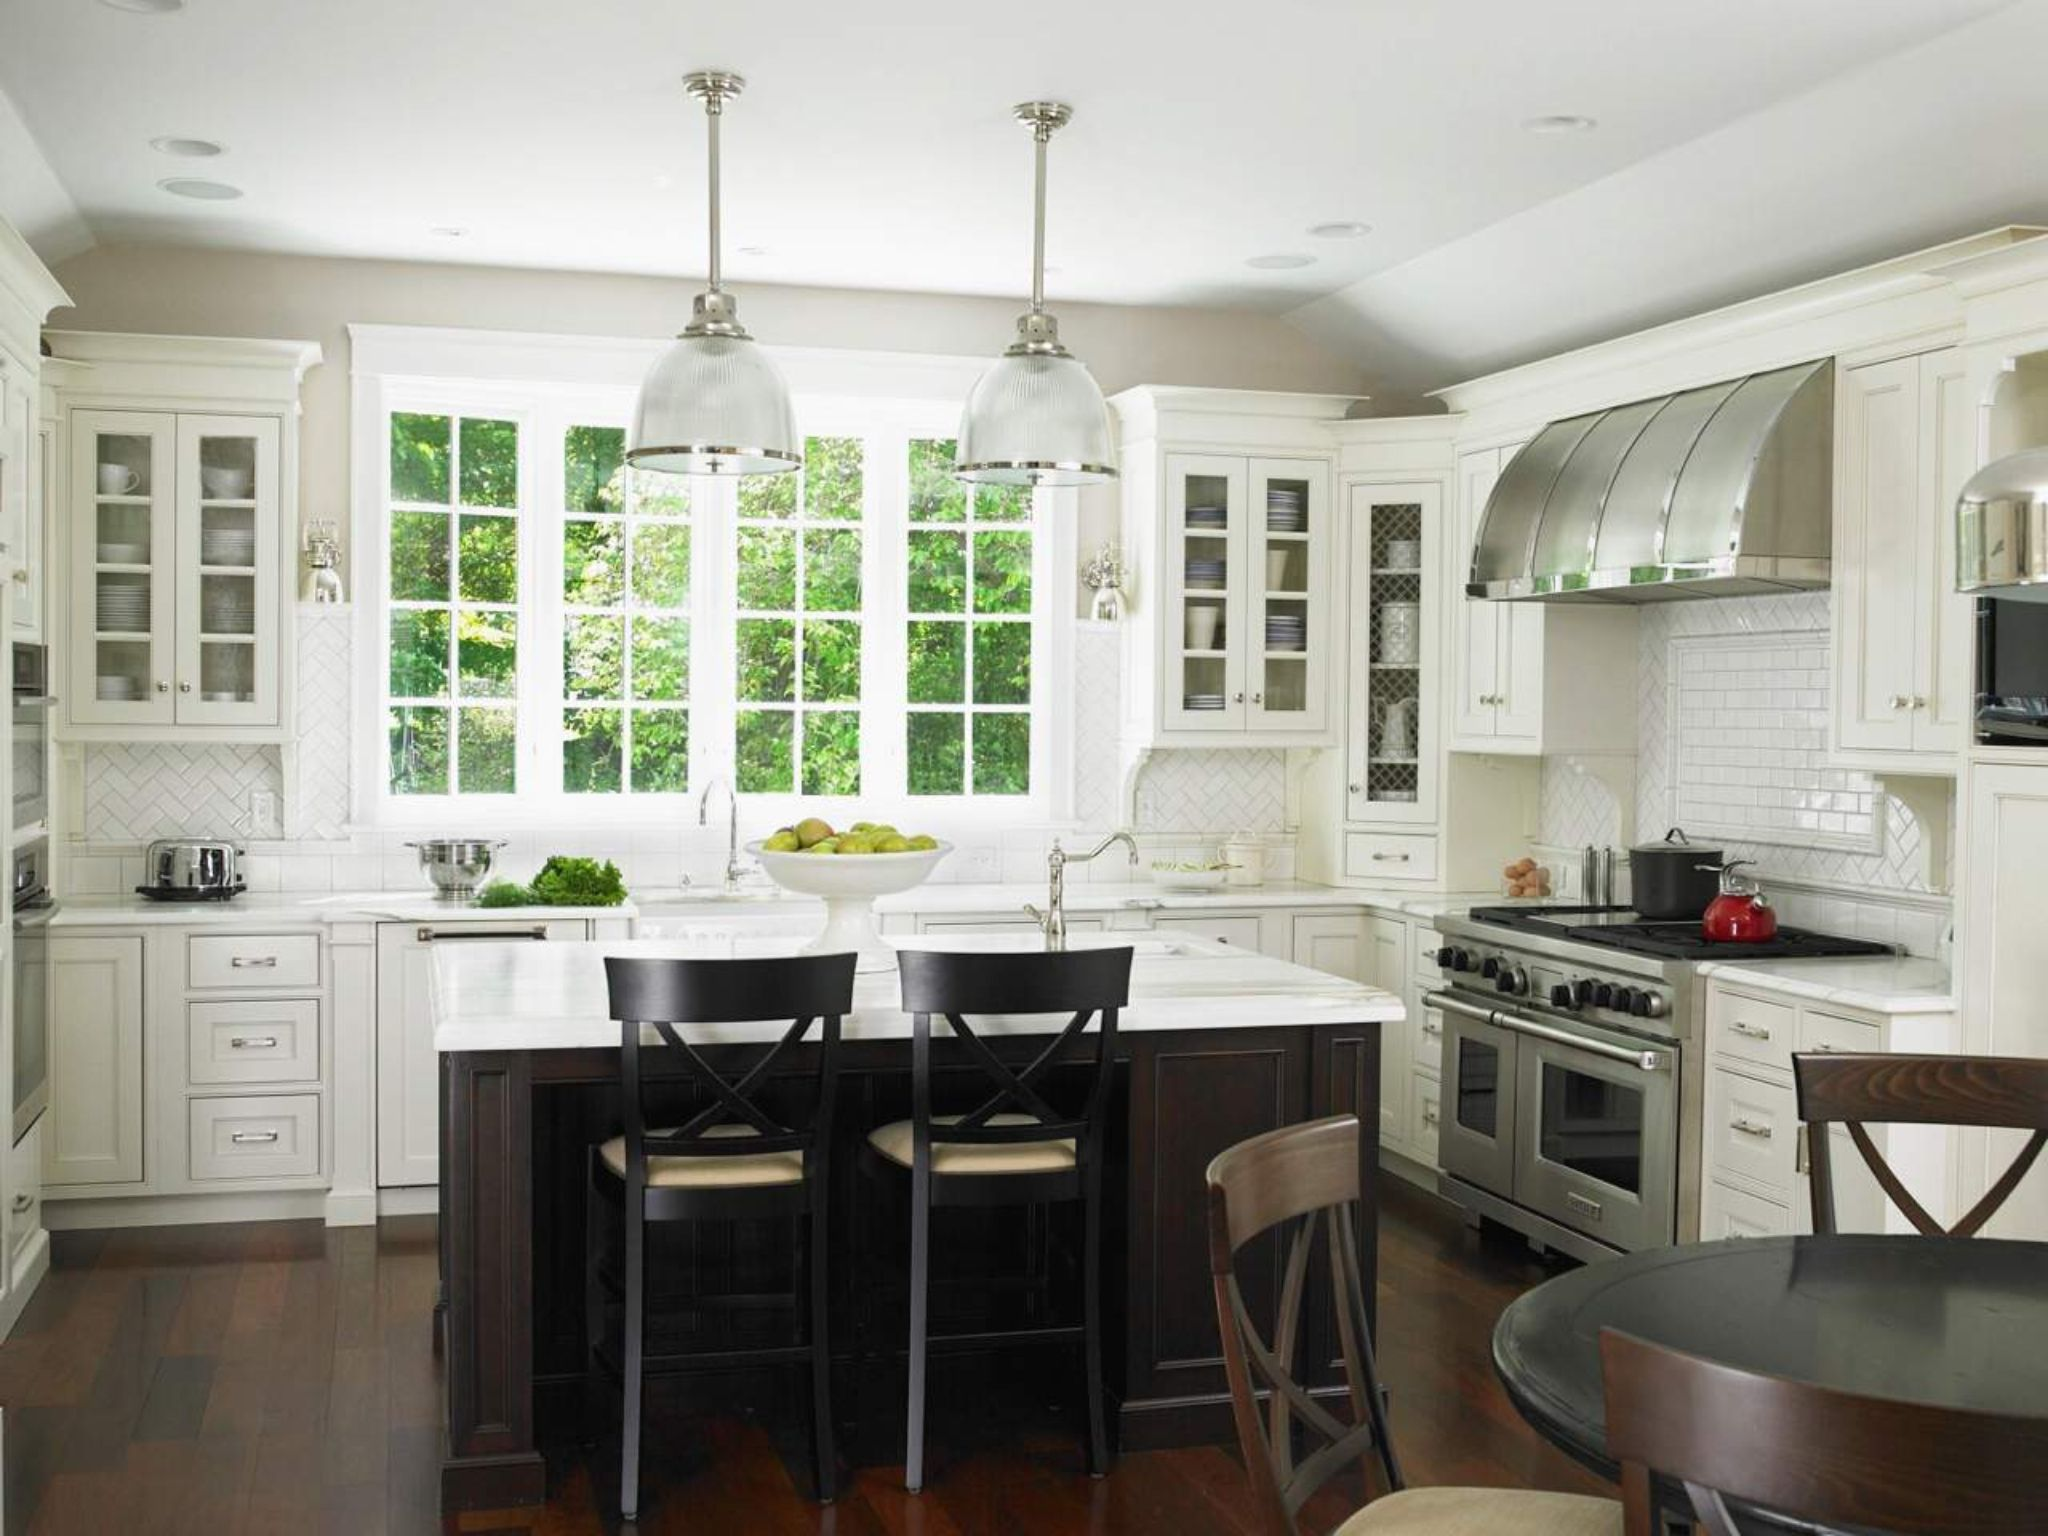 Modern Chic Glam Kitchen With Large Windows By The Sink Less Upper Wall Cabinets Cottage Style Kitchen Traditional Kitchen Design Kitchen Cabinet Inspiration